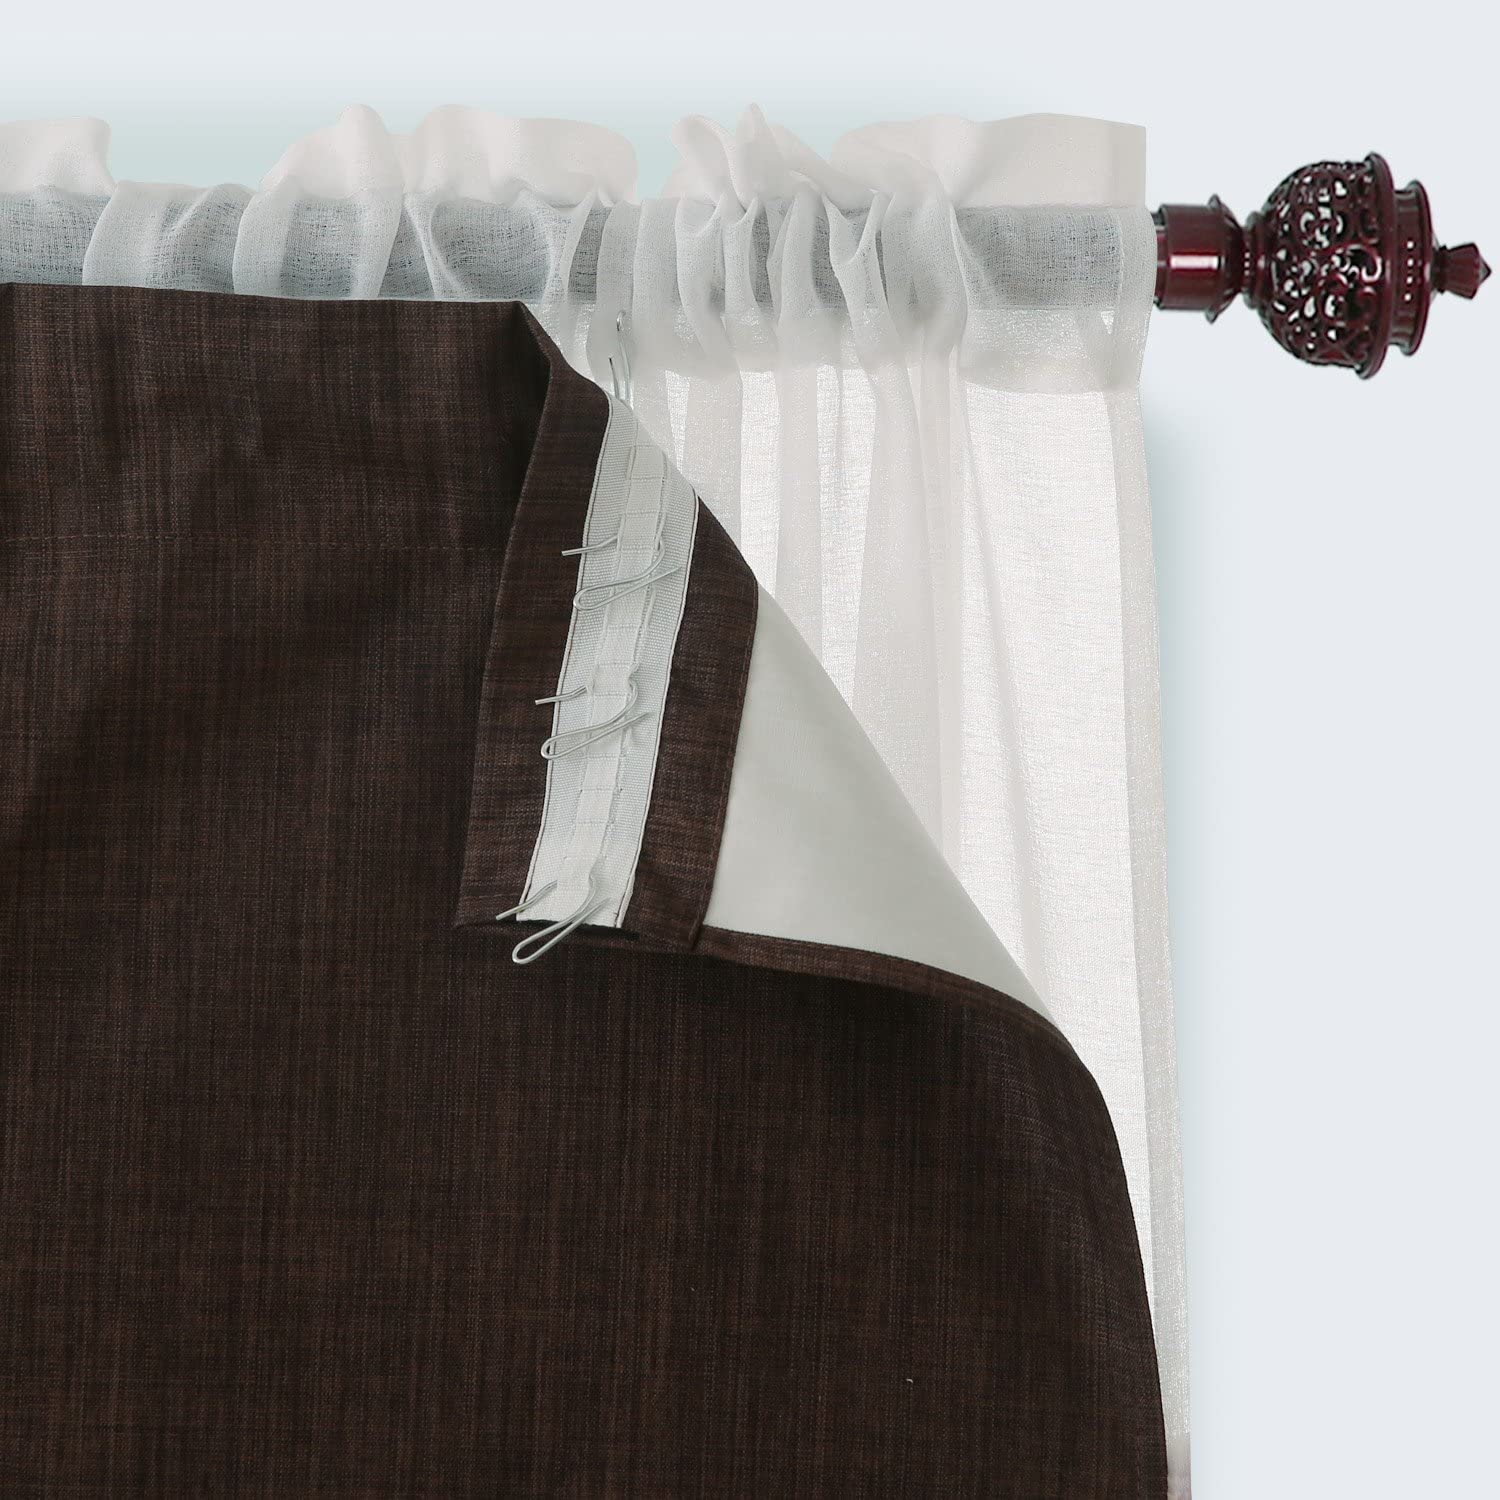 Deconovo Thermal Insulated Blackout Window Ranking TOP10 Purchase Tri Drapes Rod Pocket